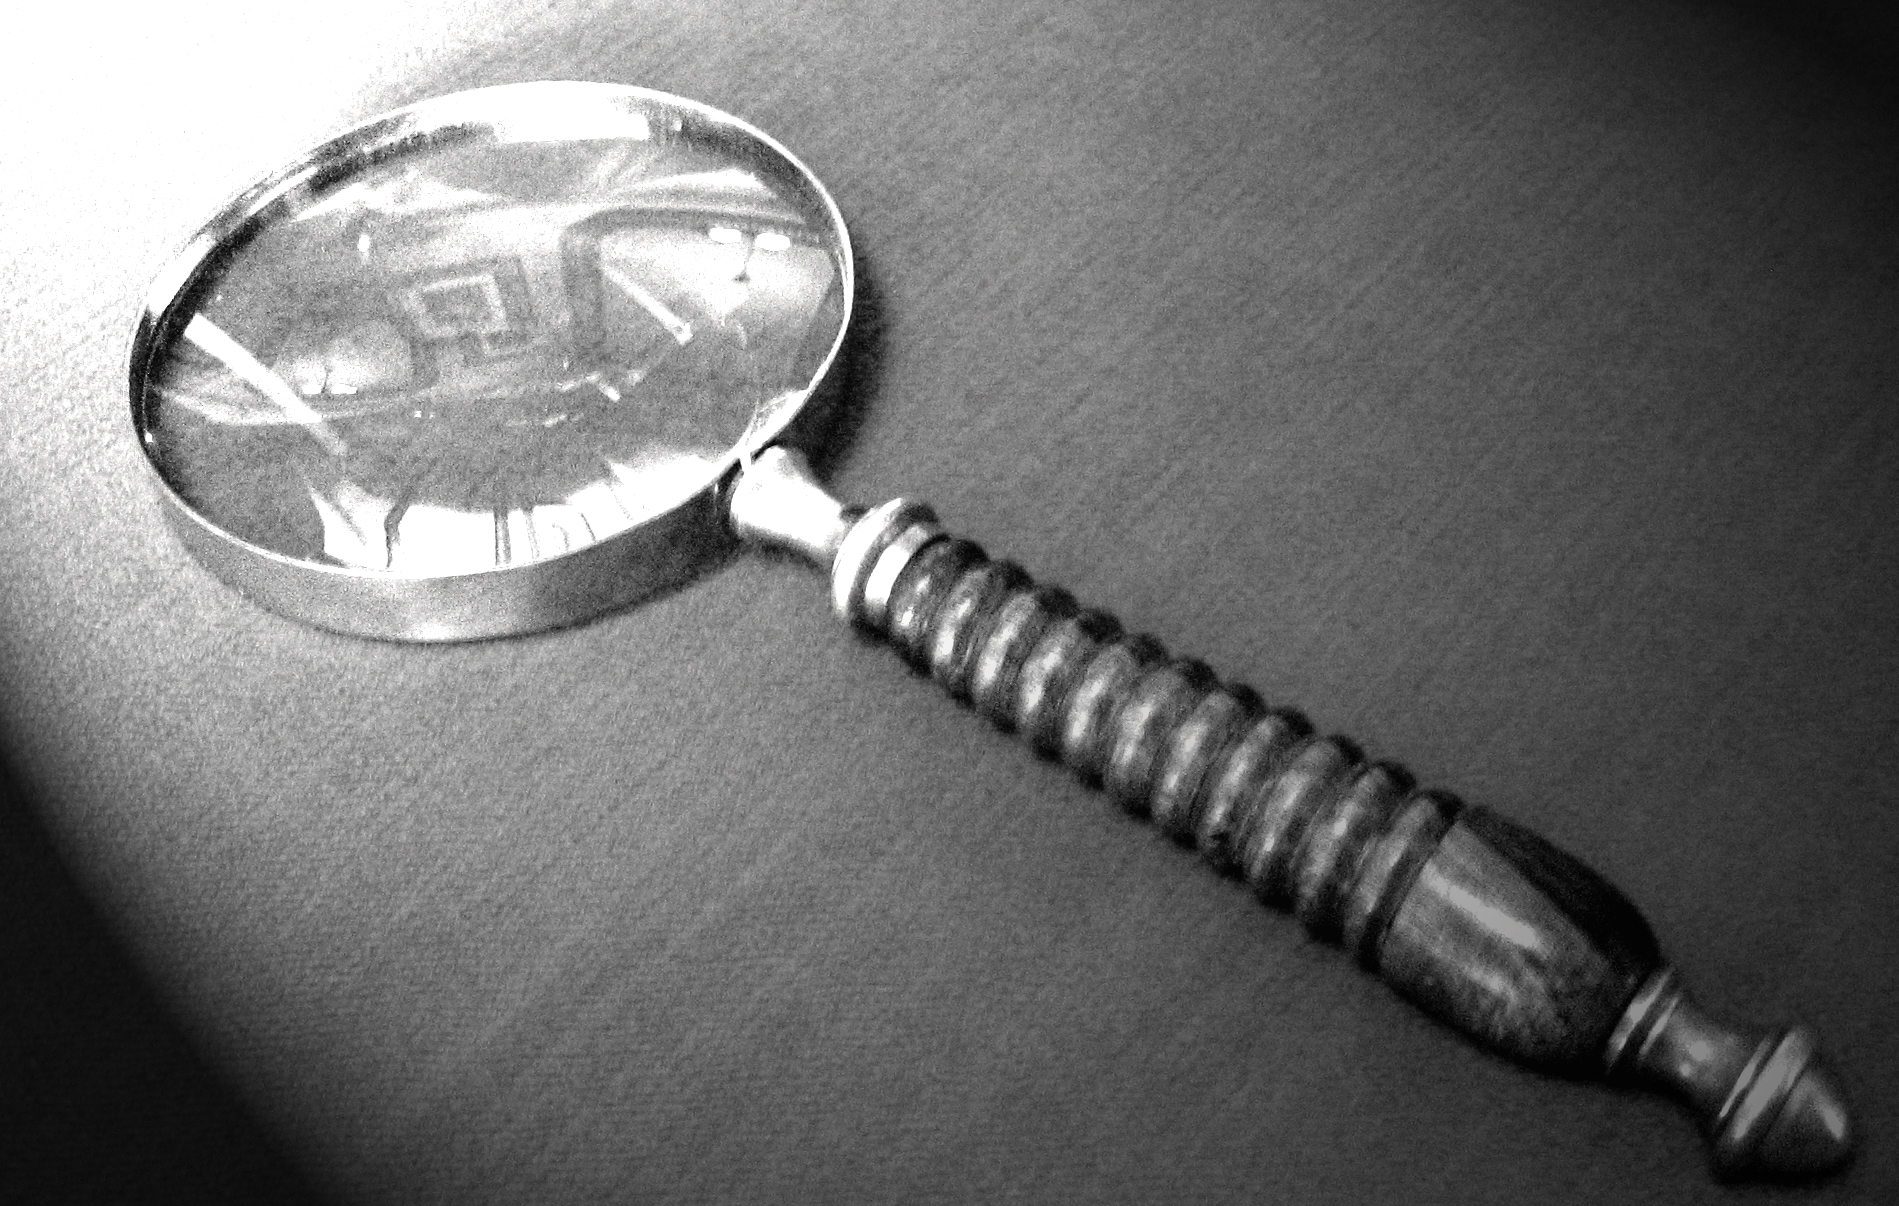 Playing Dead Murder mystery magnifying glass close up.jpg